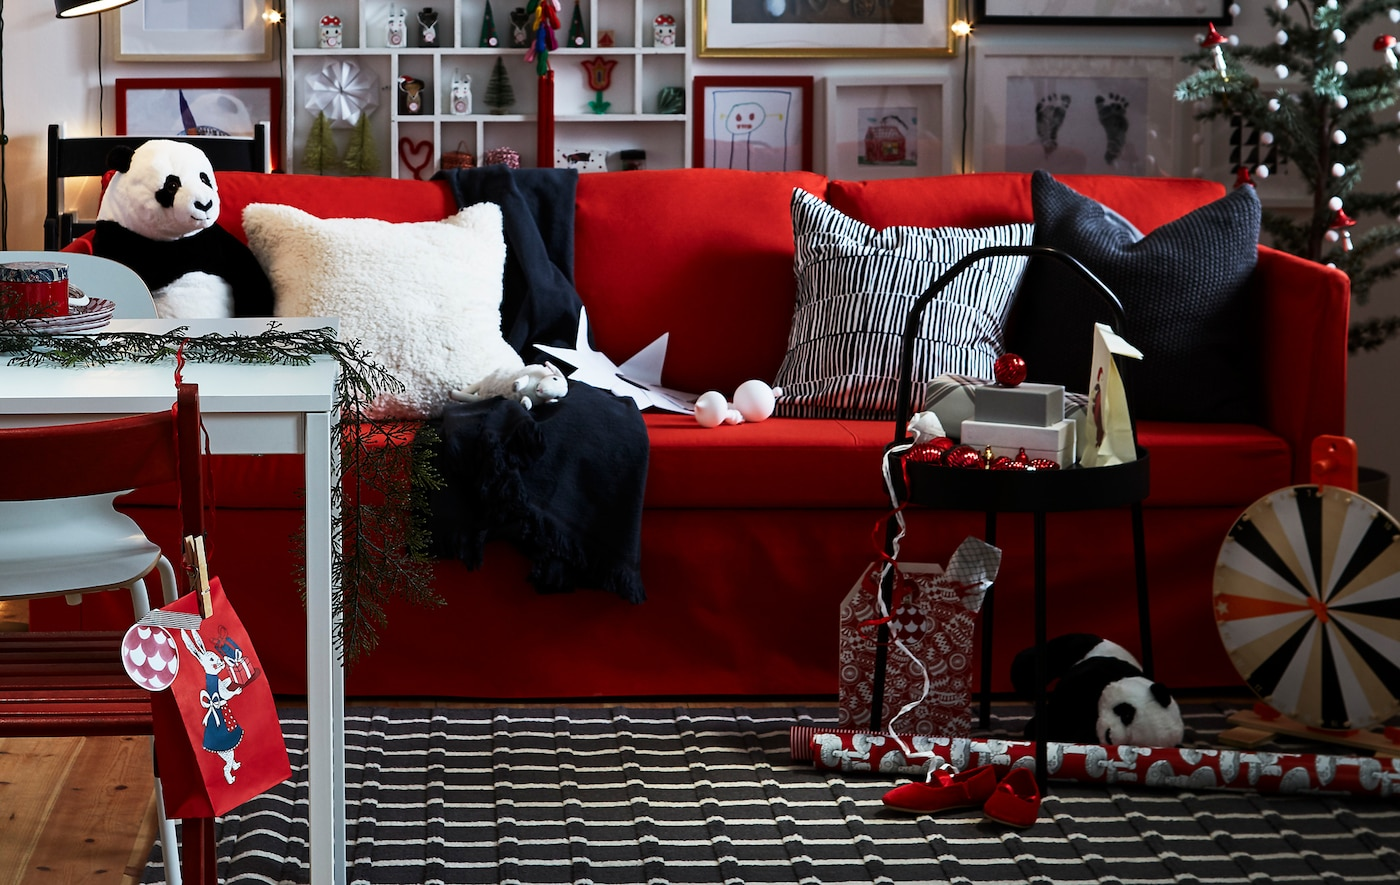 A red, black and white living room with plenty of personal details and flexible furniture creates a warm and cozy atmosphere.